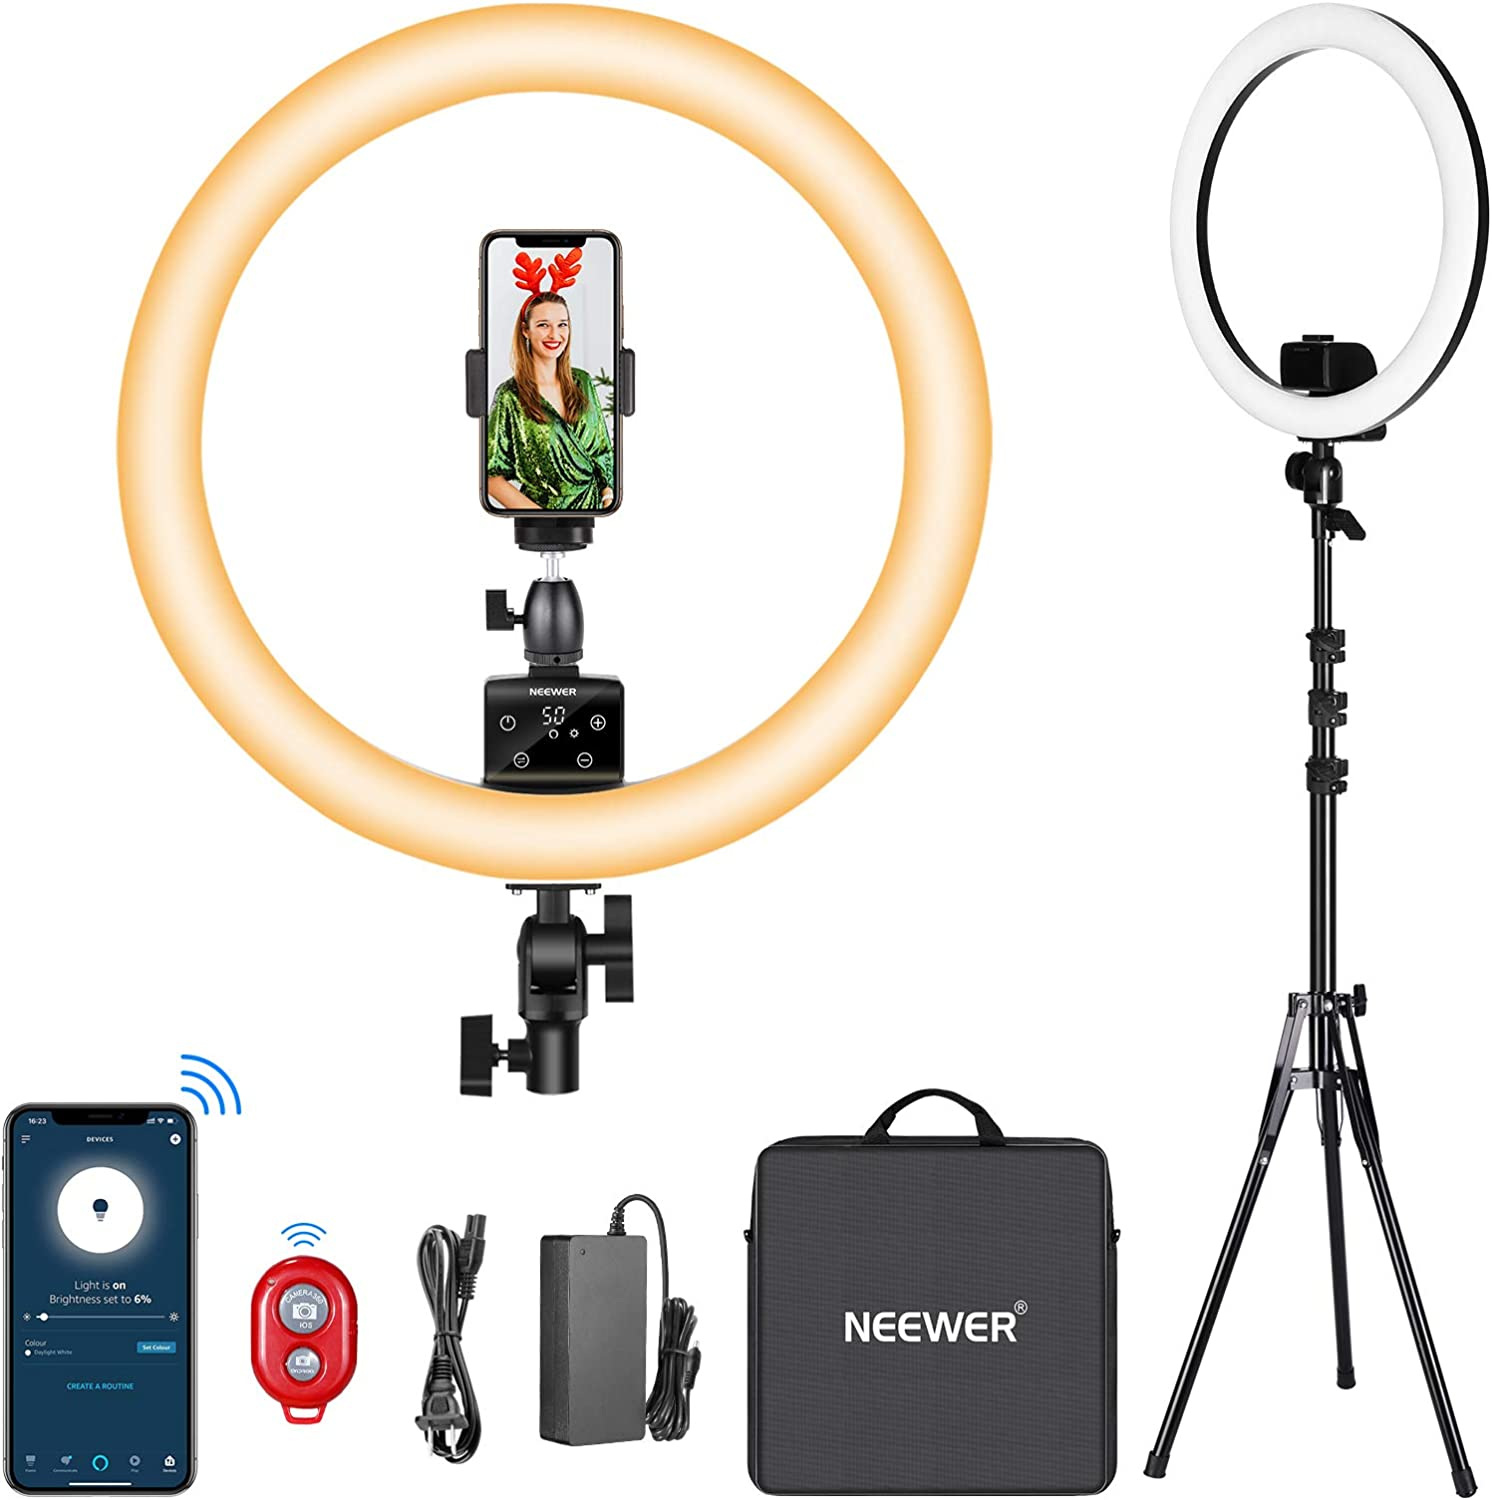 Neewer 16-inch LED Ring Light Works with Alexa, APP/Touch Screen Control, Dimmable 3200-5600K, CRI98, Light Stand Include for Makeup/TikTok/YouTube Video Recording/Vlogs/Live Streaming/Zoom Lighting